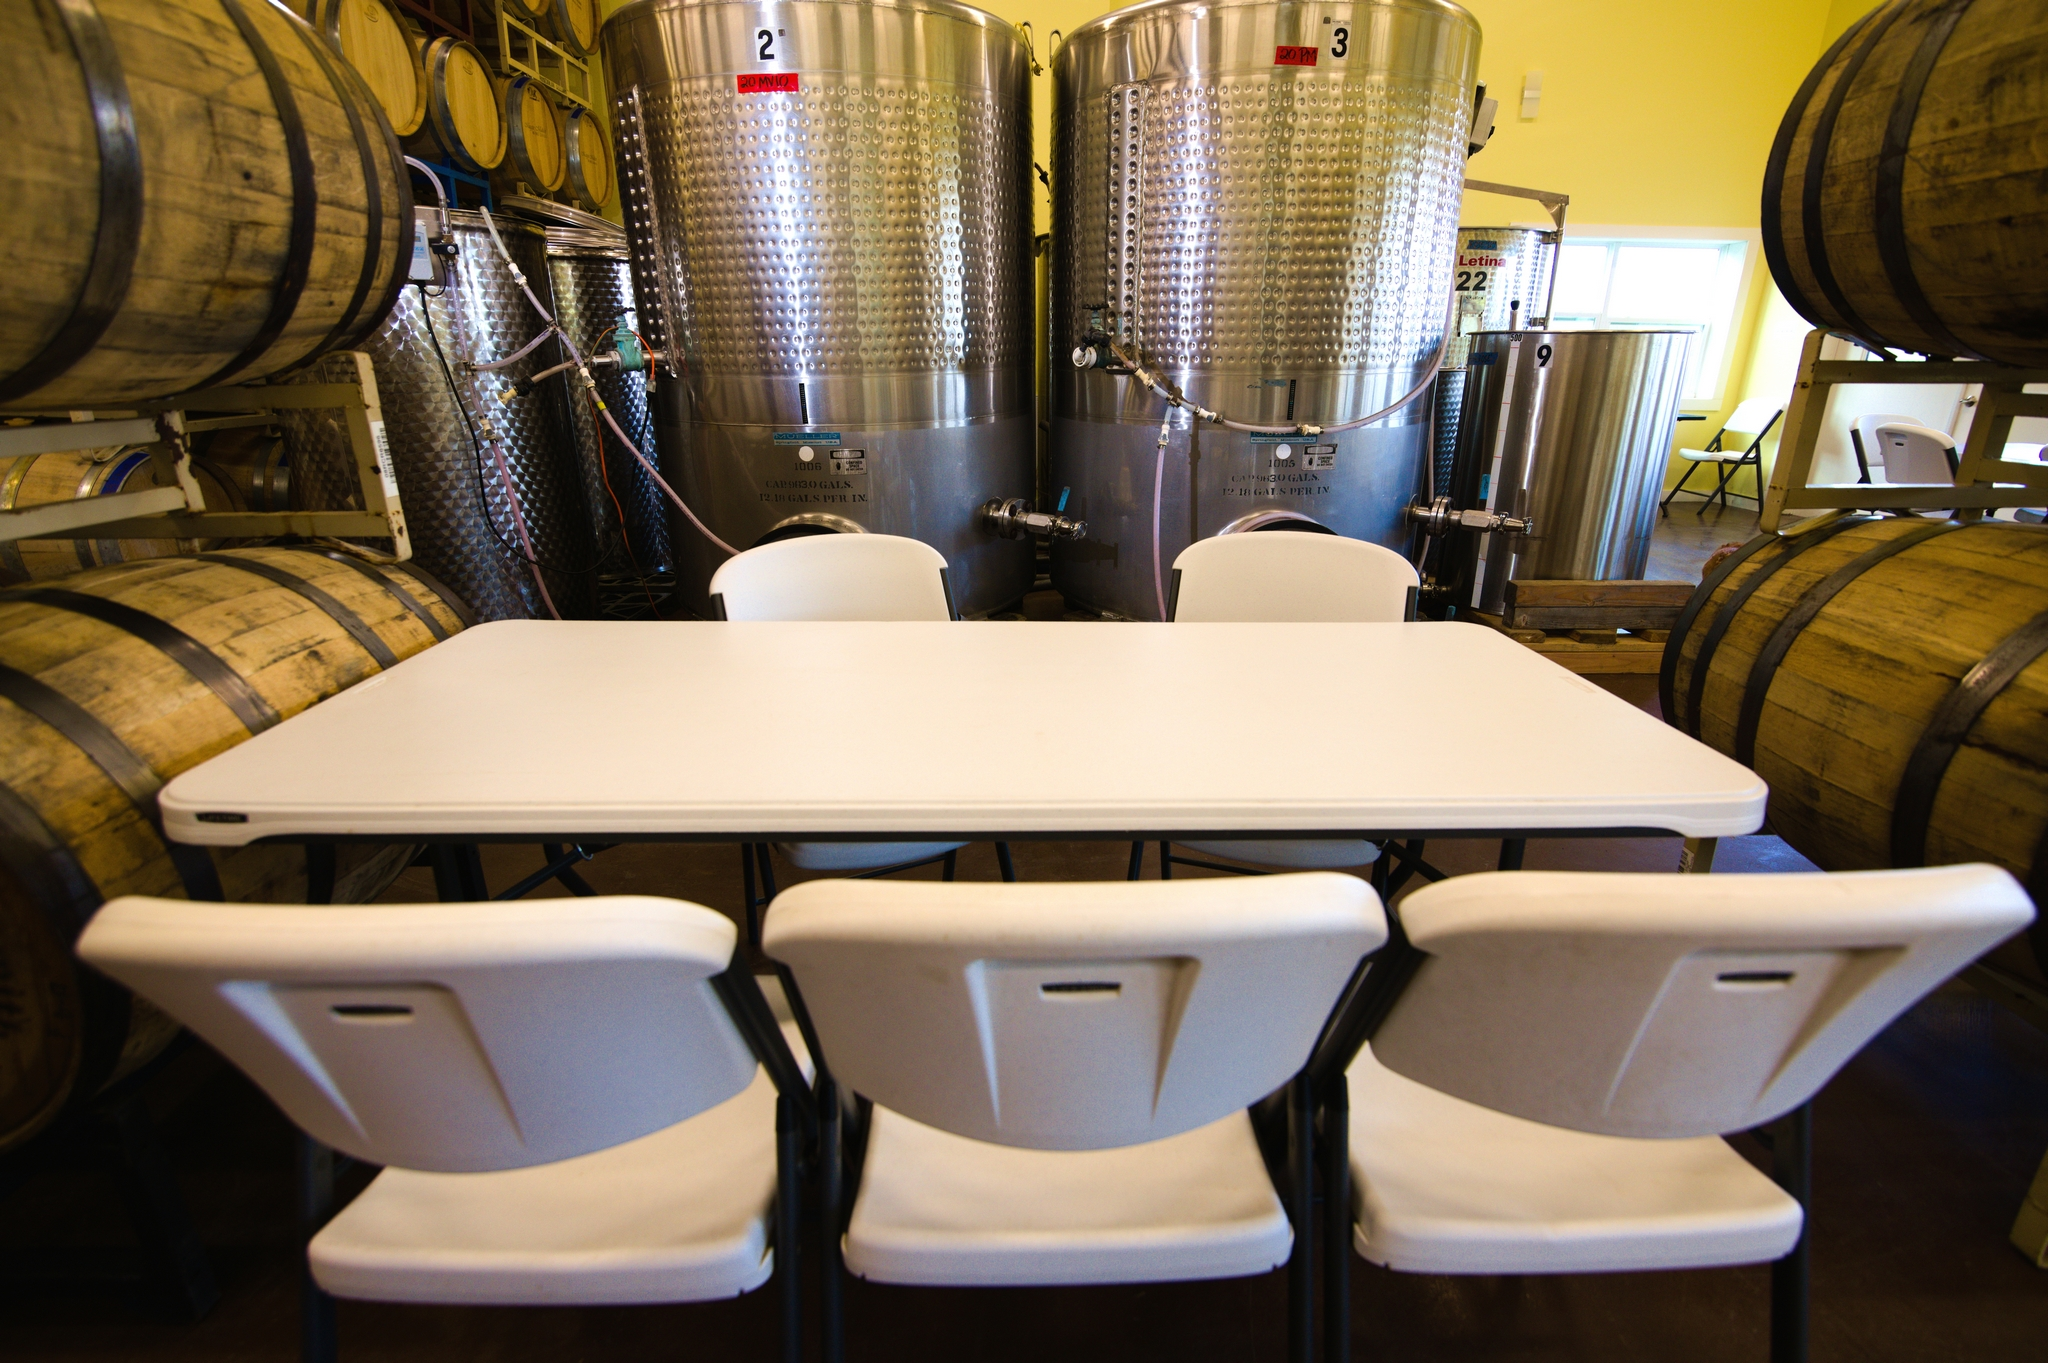 Table and chairs surrounding by barrels and tanks